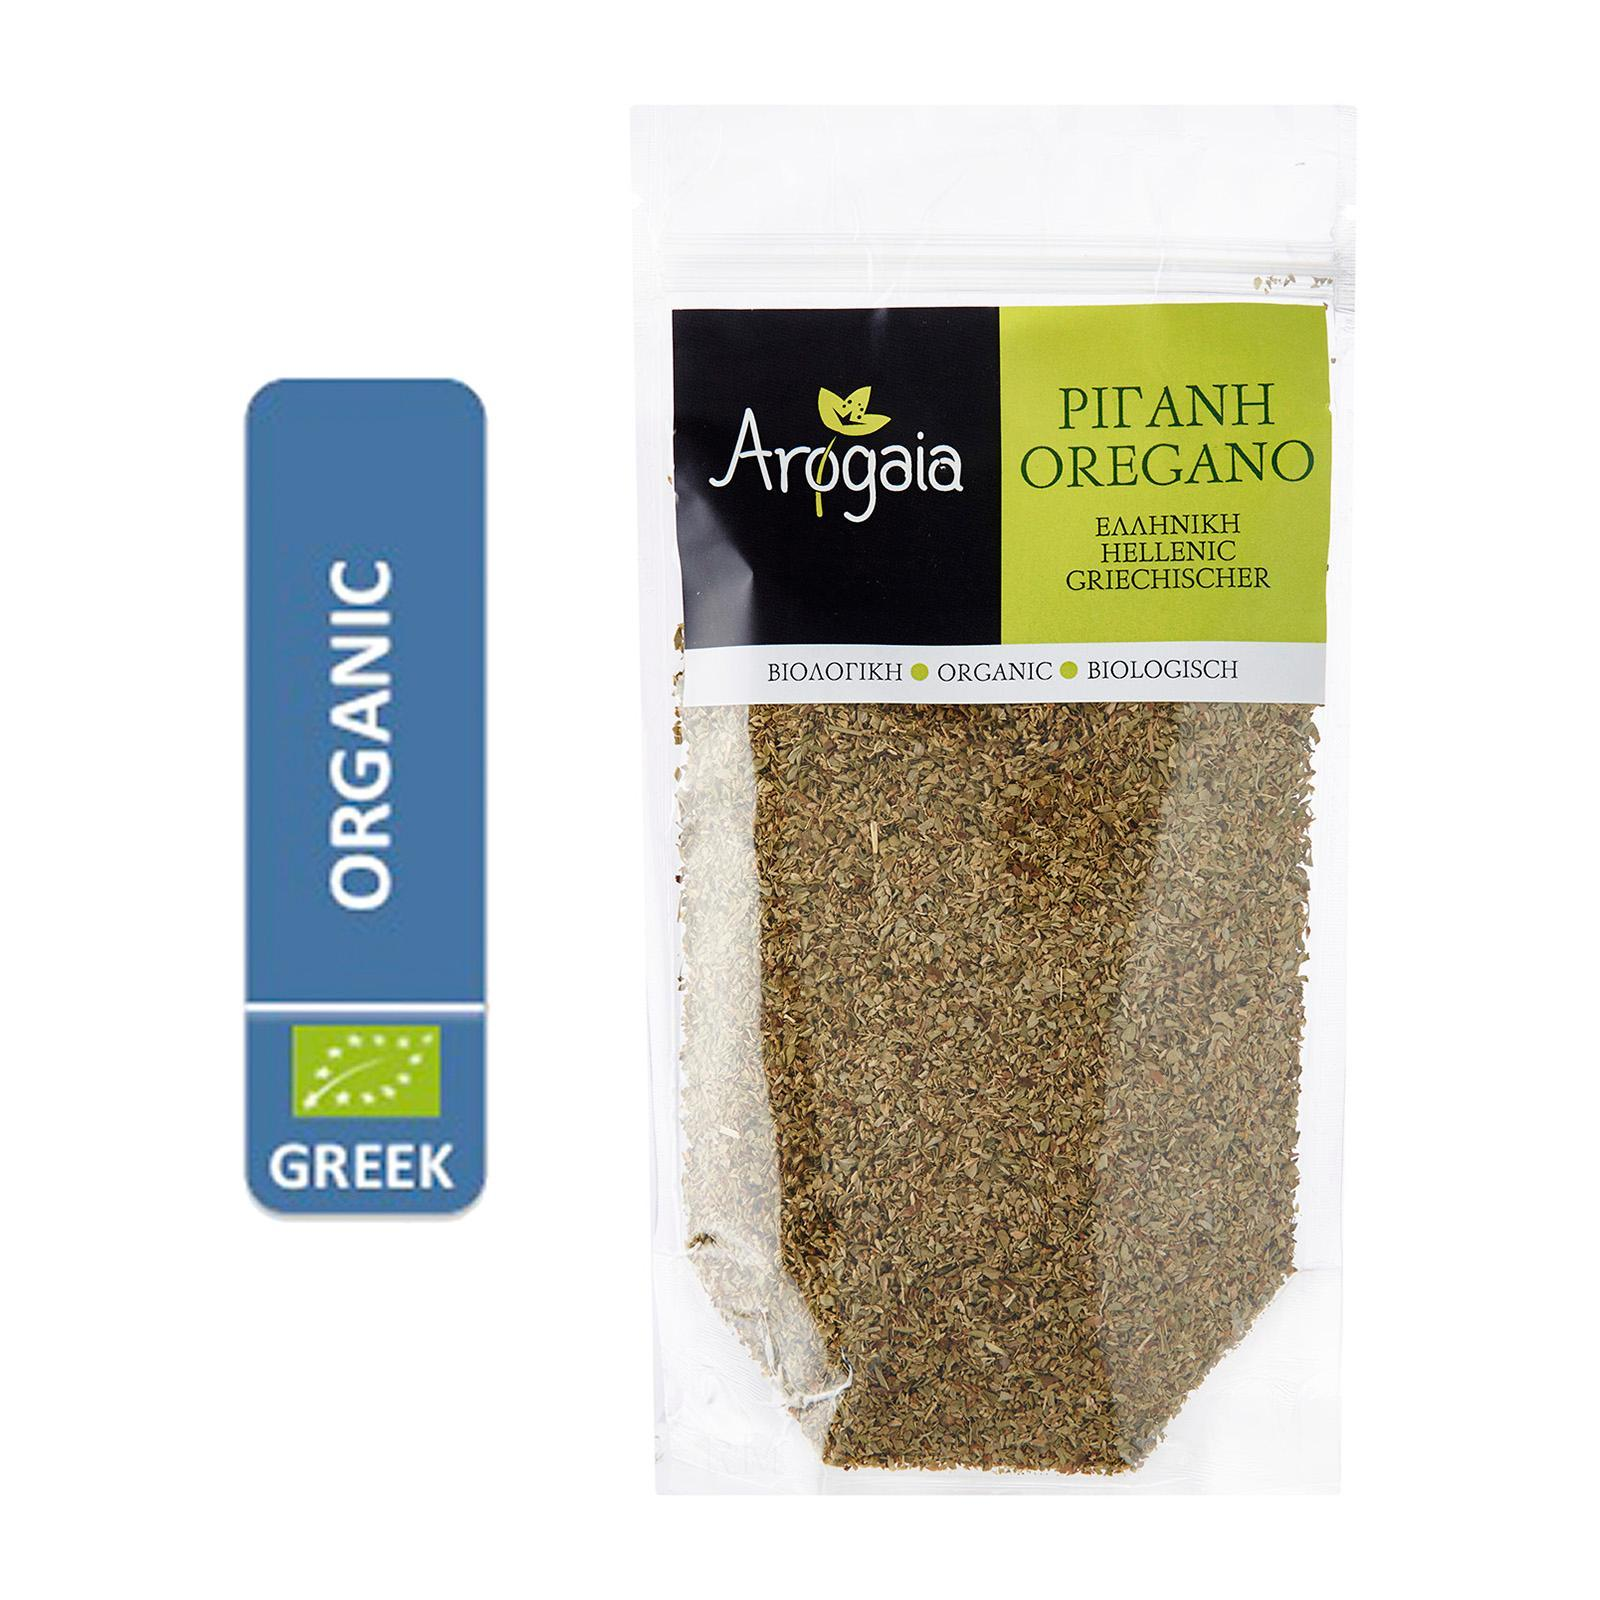 Arogaia Organic Greek Oregano In A Re-Sealable Bag - By Agora Products